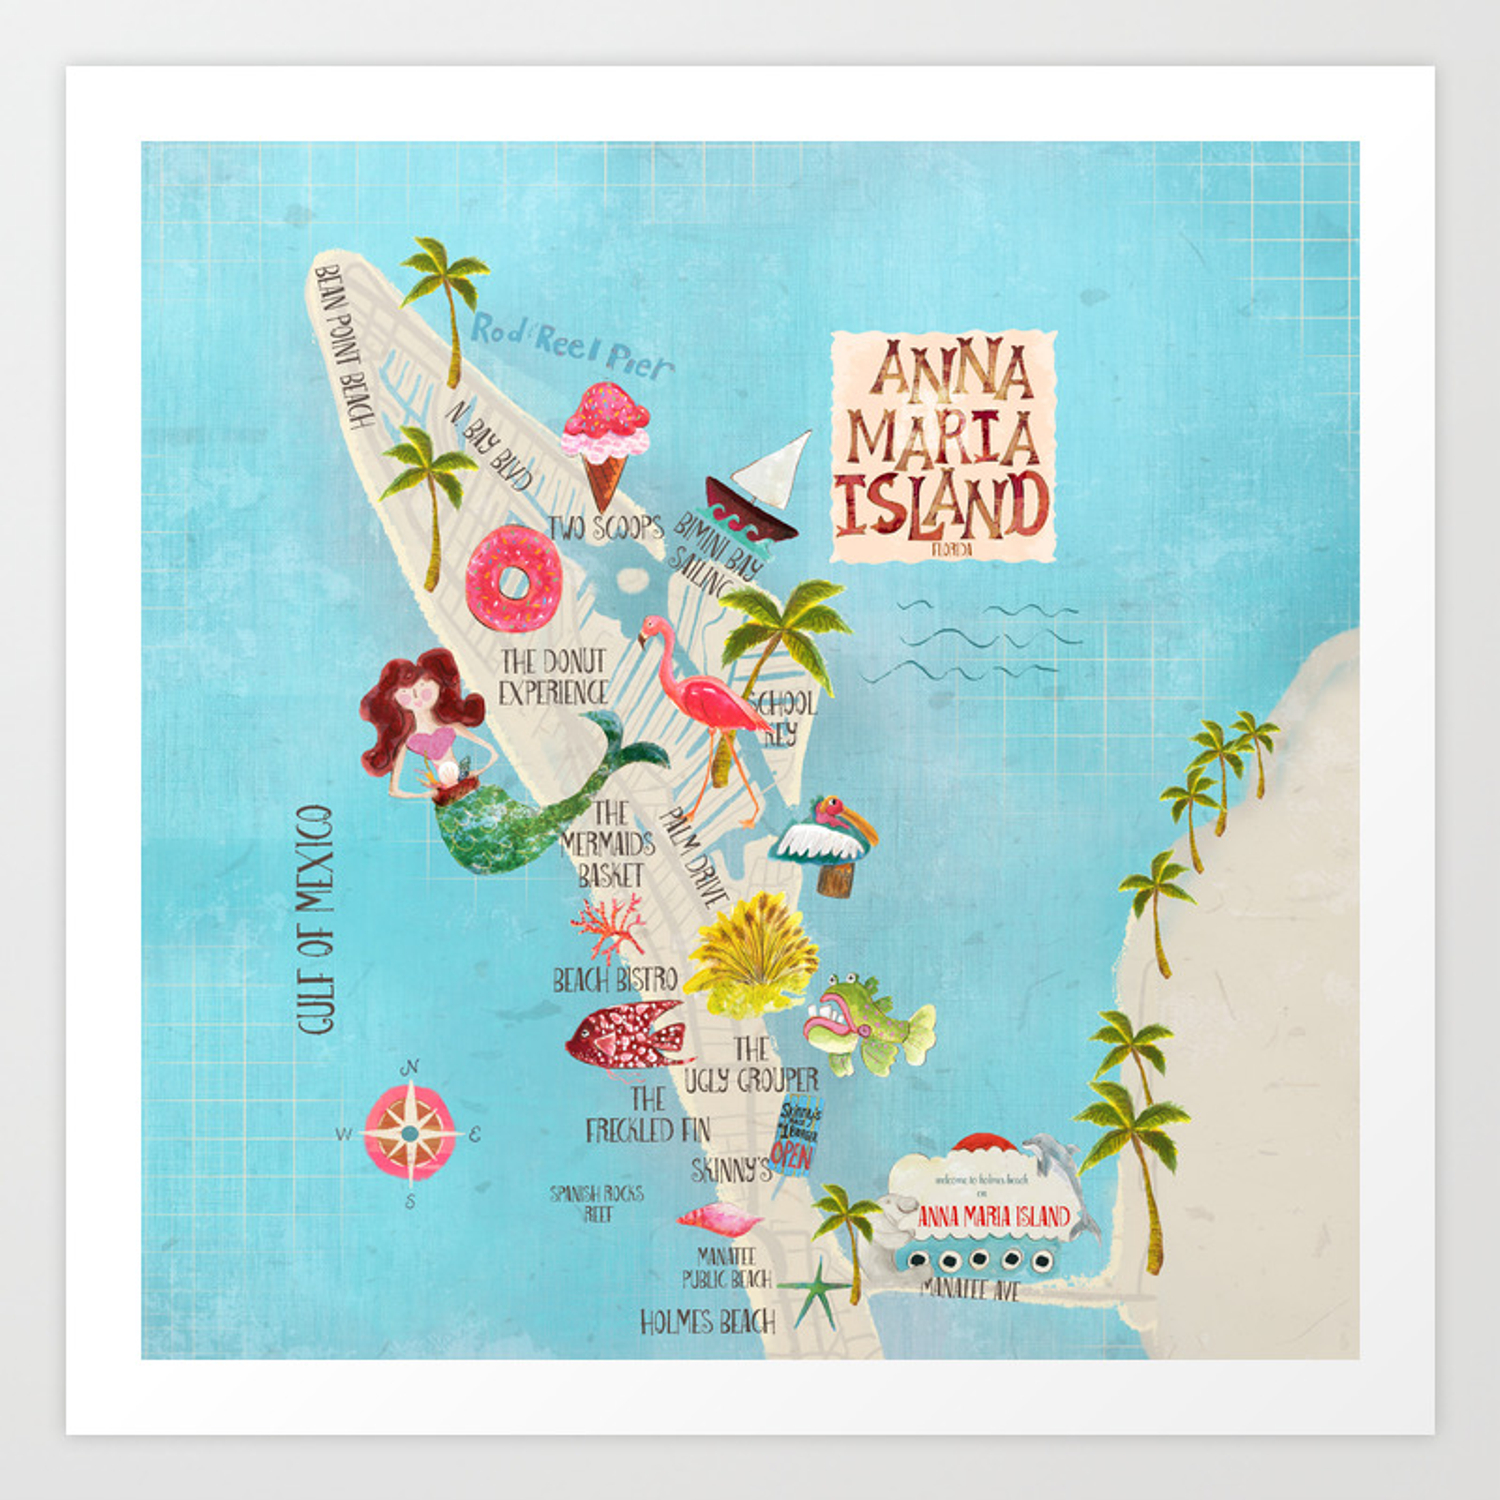 Anna Maria Island Map Art Print on map of longboat key, map of lee county, map of palm beach county, map of west palm beach, map of florida, map of upham beach, map of leu gardens, map of seaside, map of cape san blas, map of palm beach gardens, map of new smyrna beach, map of st. johns river, map of gulfport, map of eastern time zone, map of new port richey, map of indian rocks beach, map of celebration, map of st armands circle, map of little manatee river, map of pinellas county,